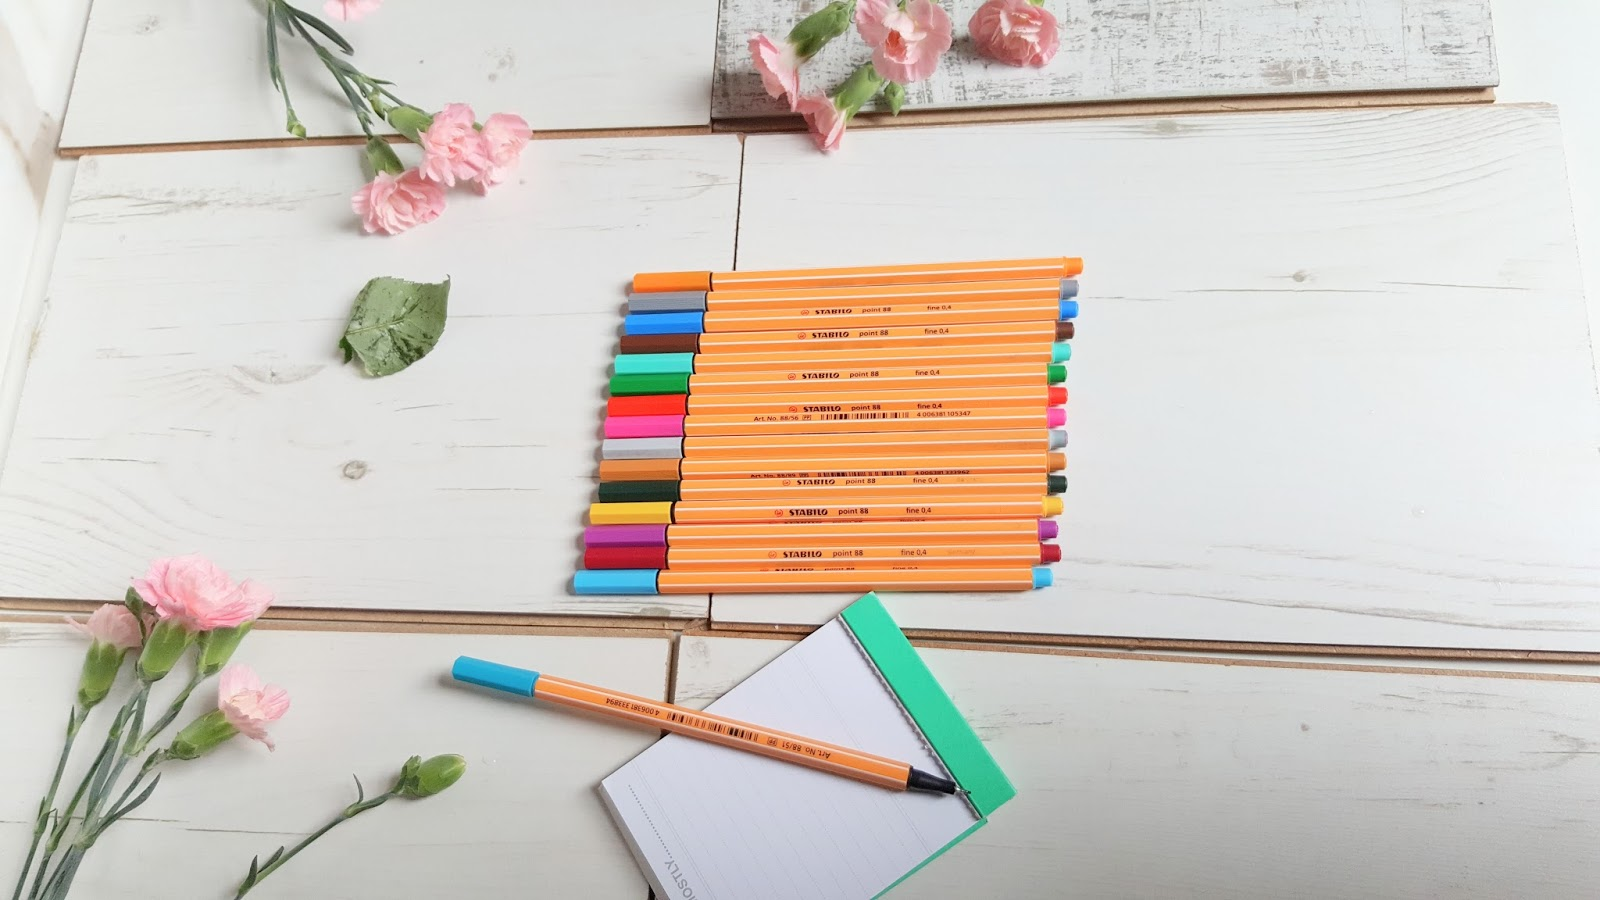 stabilo pens - how to generate blog post ideas